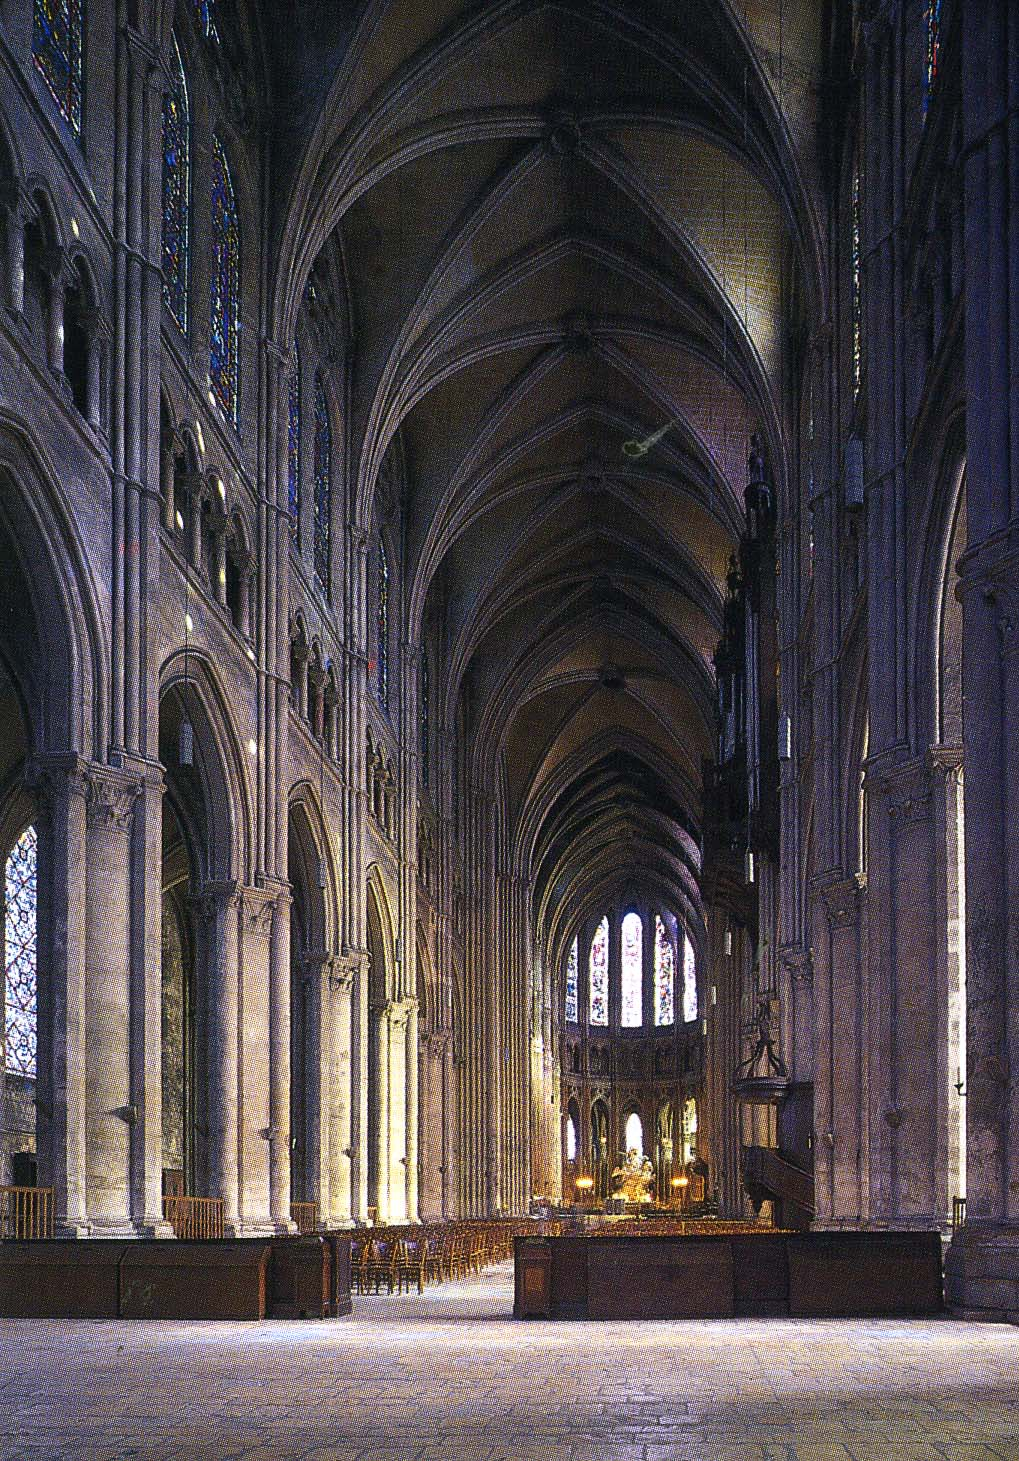 Interior of Chartres Cathedral: www.thehistoryhub.com/chartres-cathedral-facts-pictures.htm